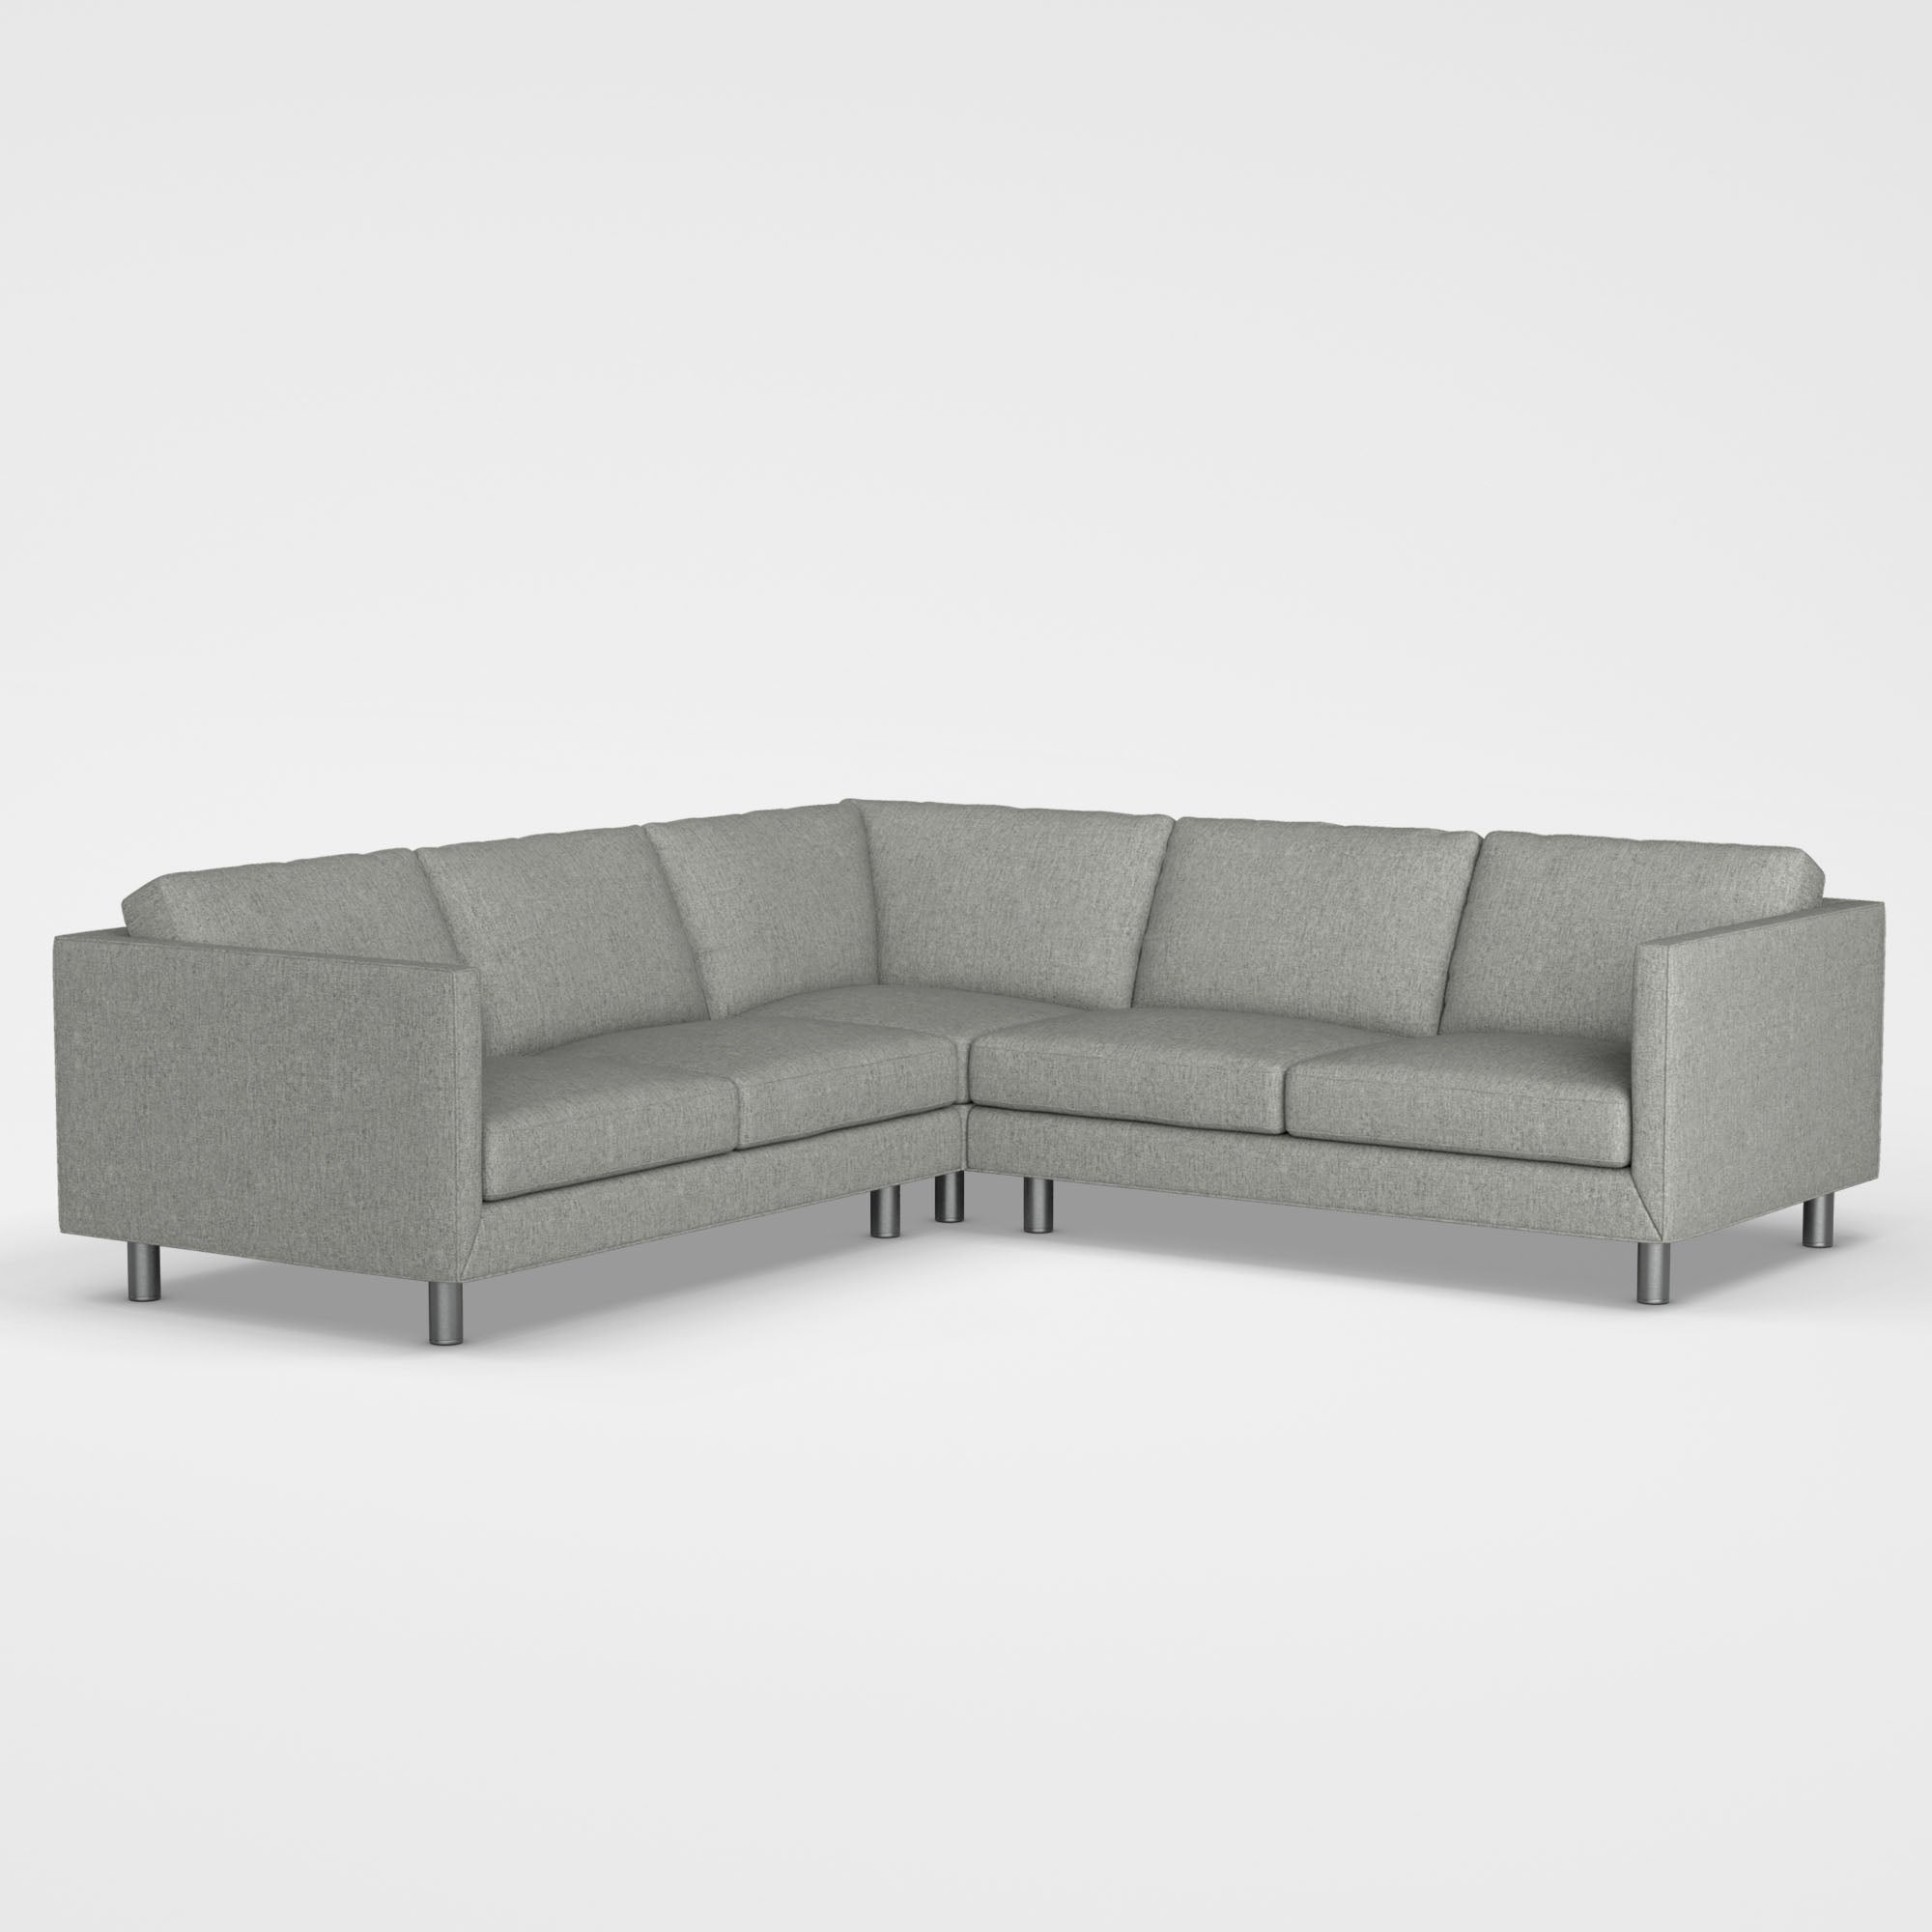 Willamette Sectional Sofa Comfy And